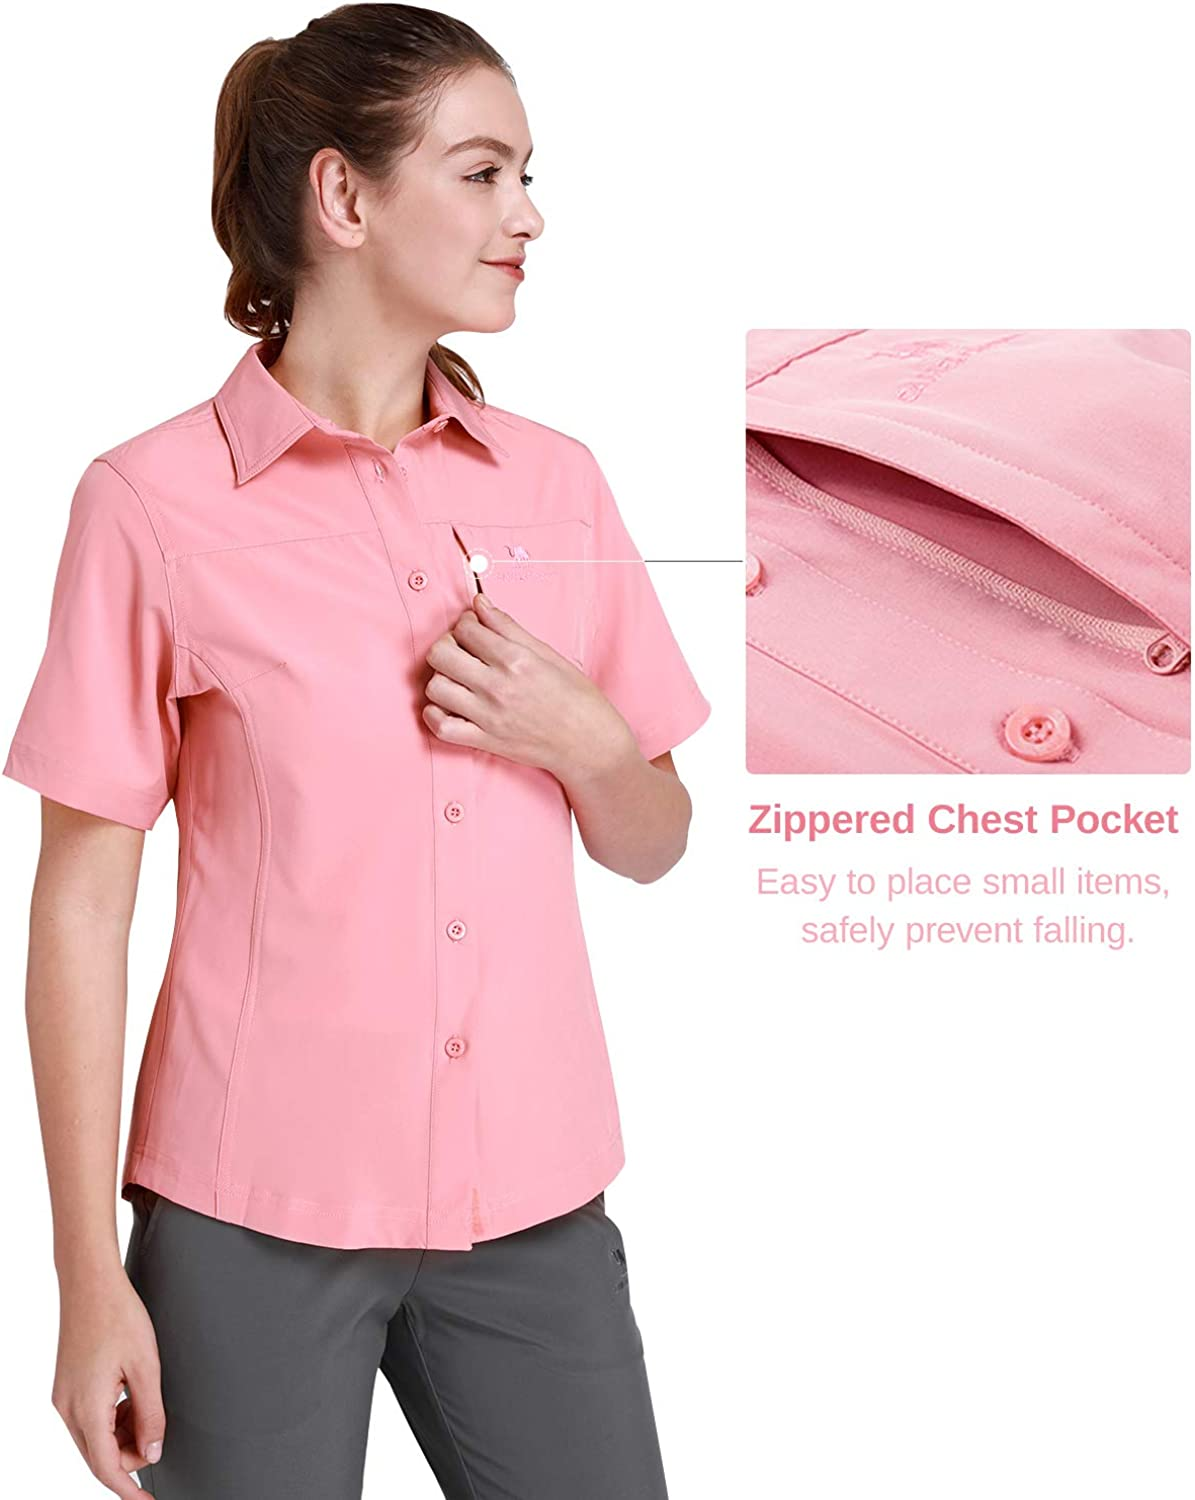 CAMEL CROWN Quick Dry Short Sleeve Shirt With UV Protection For Women Hiking Fishing Outdoor